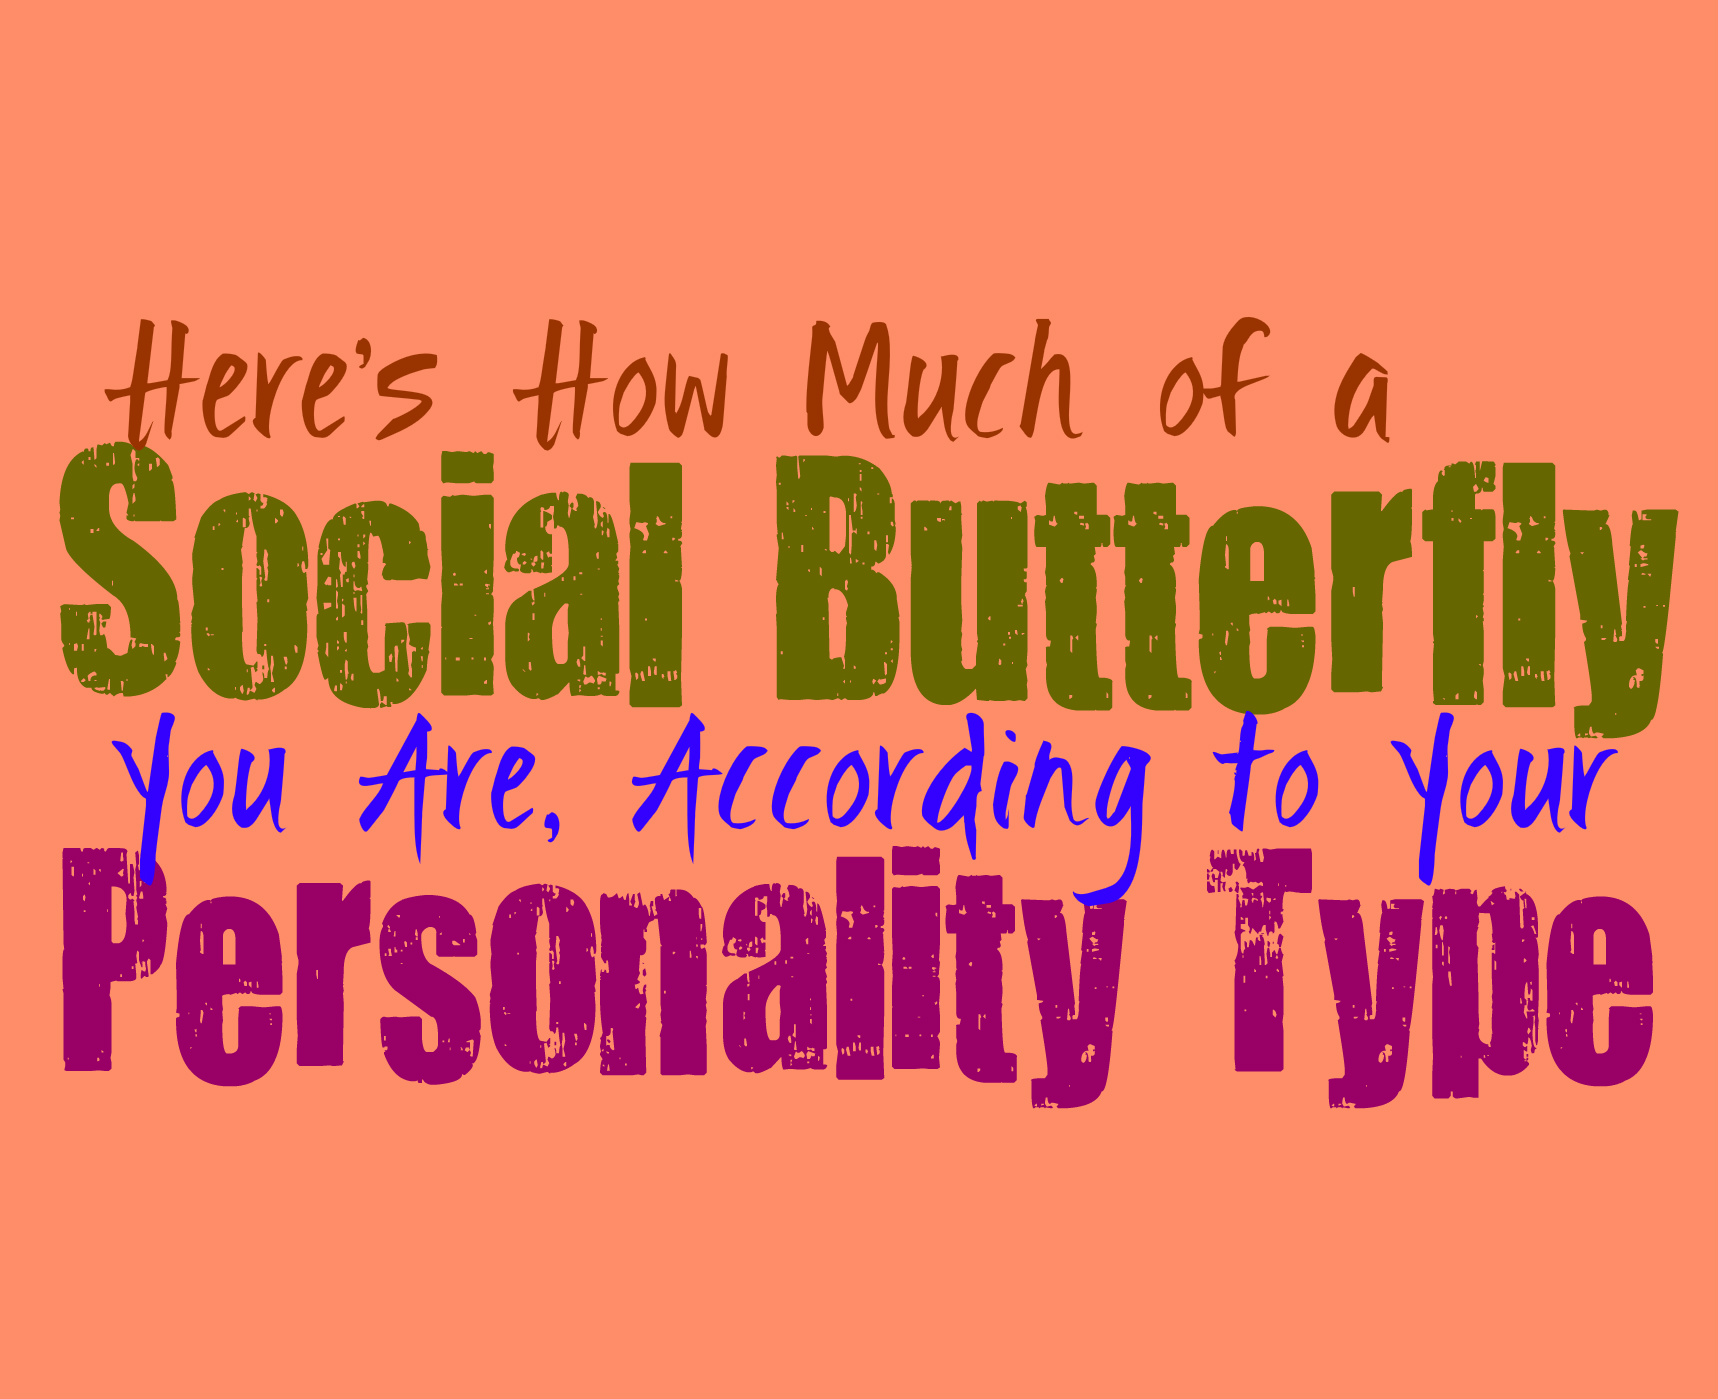 Here's How Much of a Social Butterfly You Are, According to Your